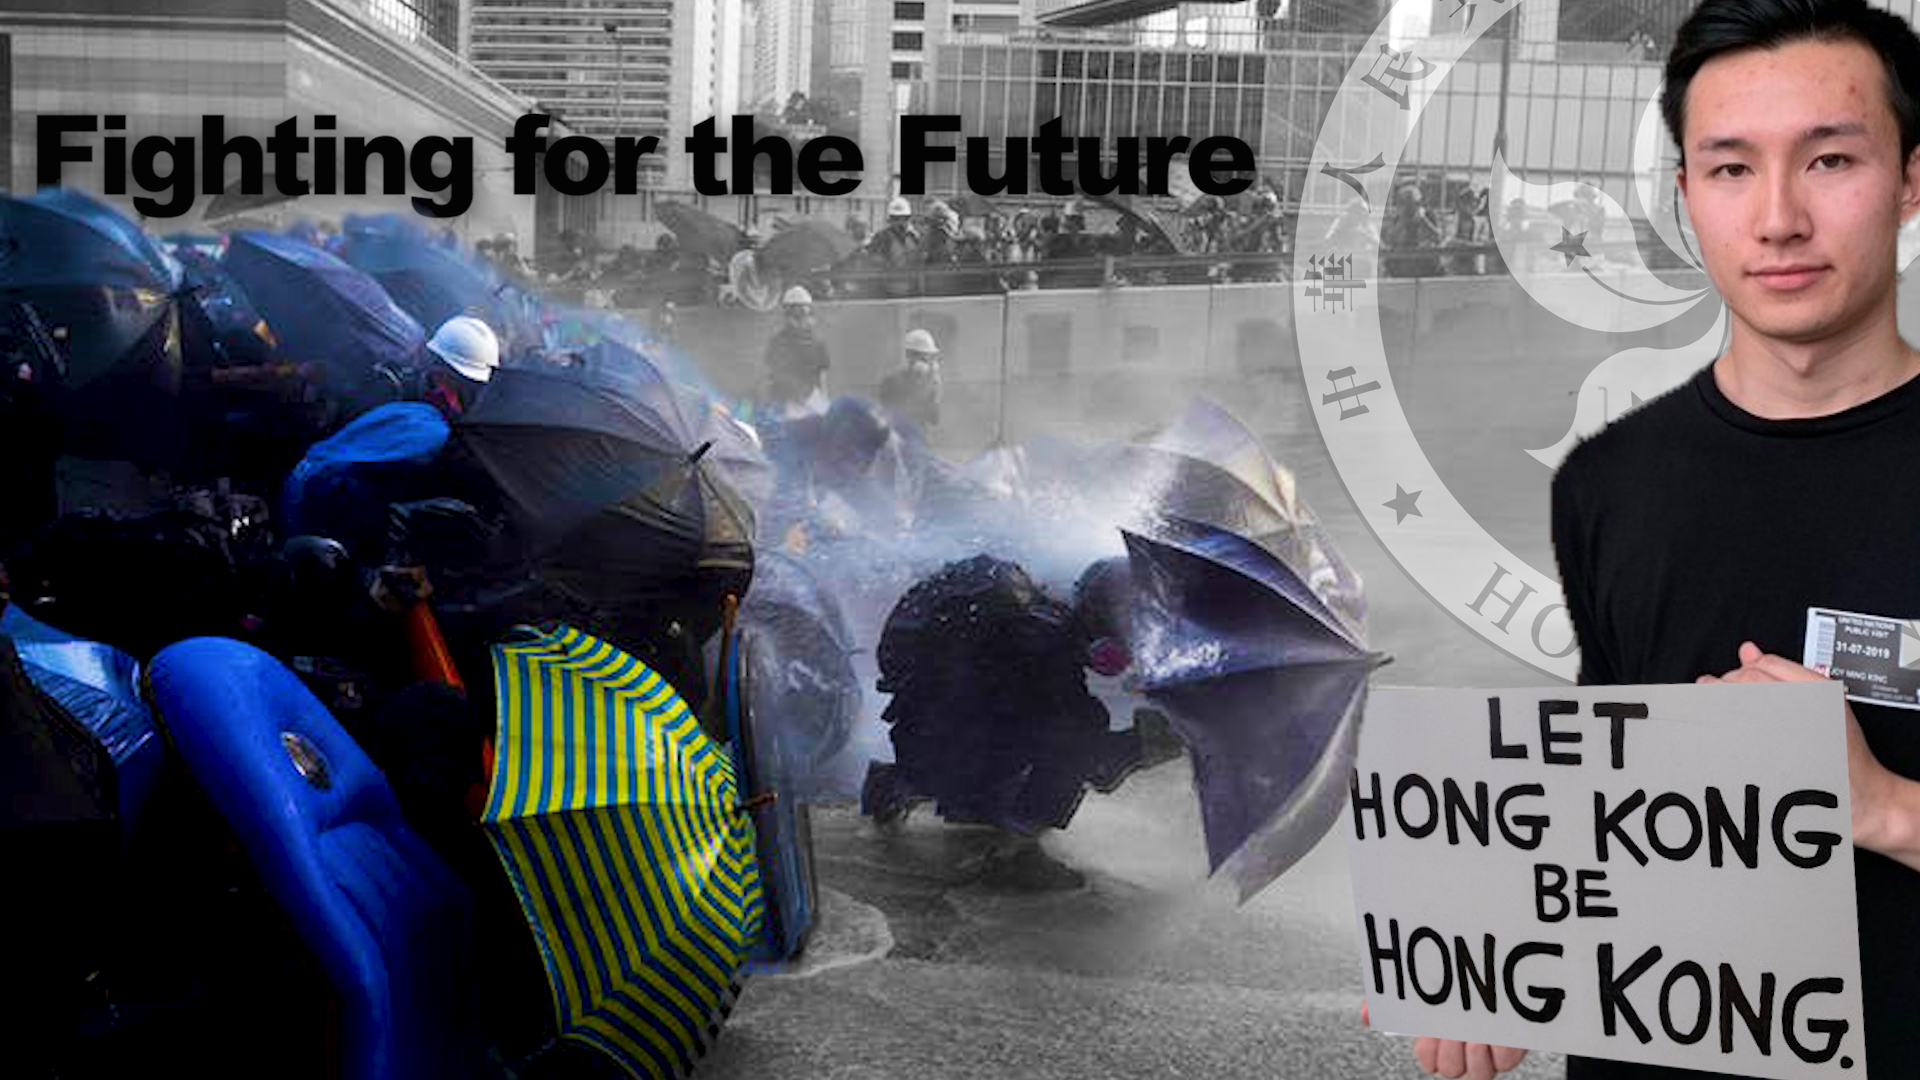 Fighting for the Future of Hong Kong Protesters continue to resist autocratic control of Mainland China and maintain autonomy as they fight for the future of Hong Kong.Protesters continue to resist autocratic control of Mainland China and maintain autonomy as they fight for the future of Hong Kong.Protesters continue to resist autocratic control of Mainland China and maintain autonomy as they fight for the future of Hong Kong.